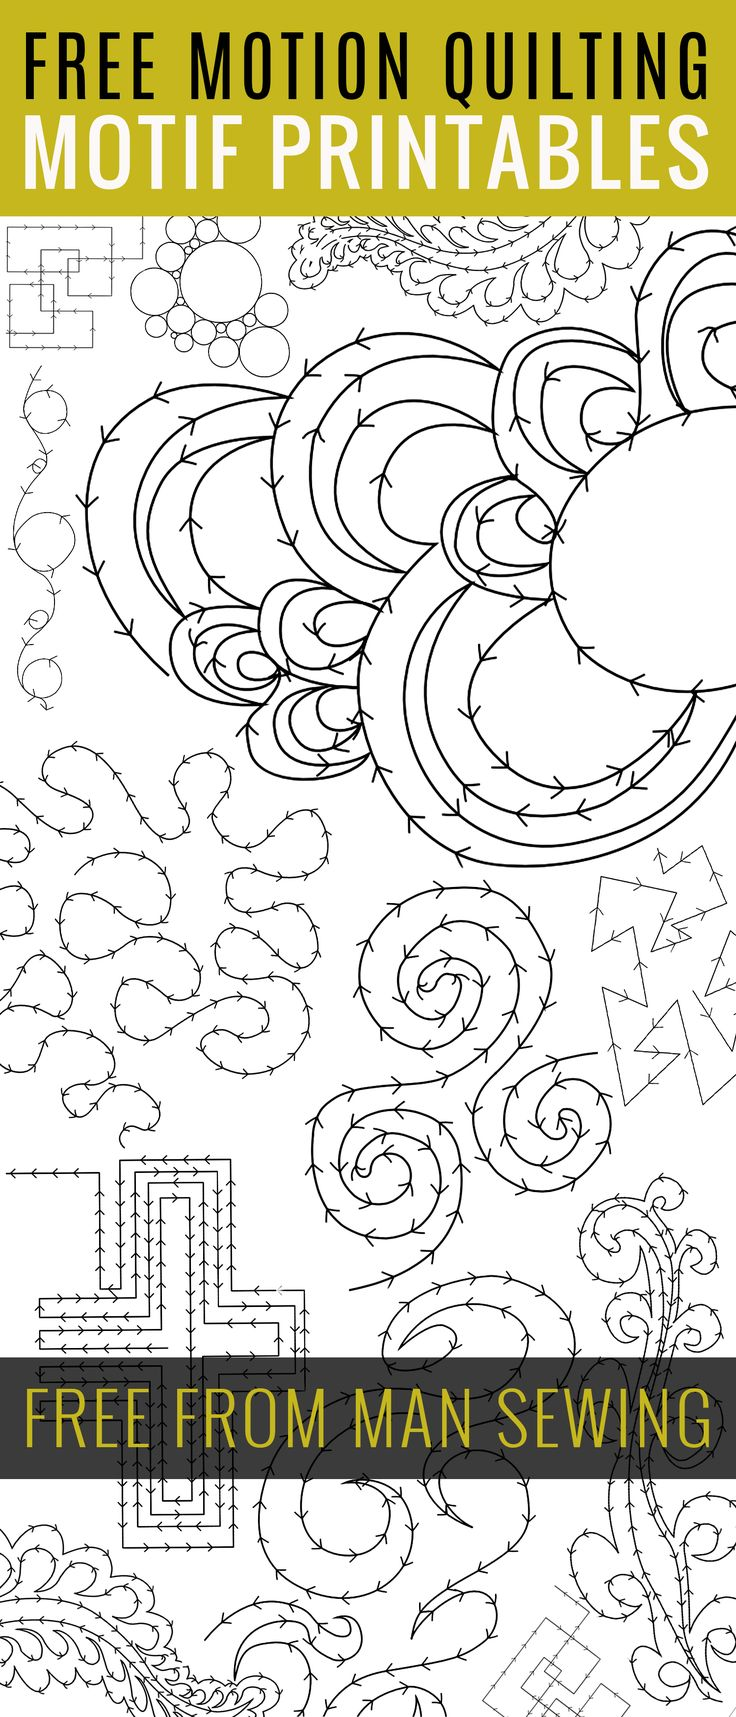 Printable quilt pattern coloring pages - Find This Pin And More On Coloring Pages By Shar315